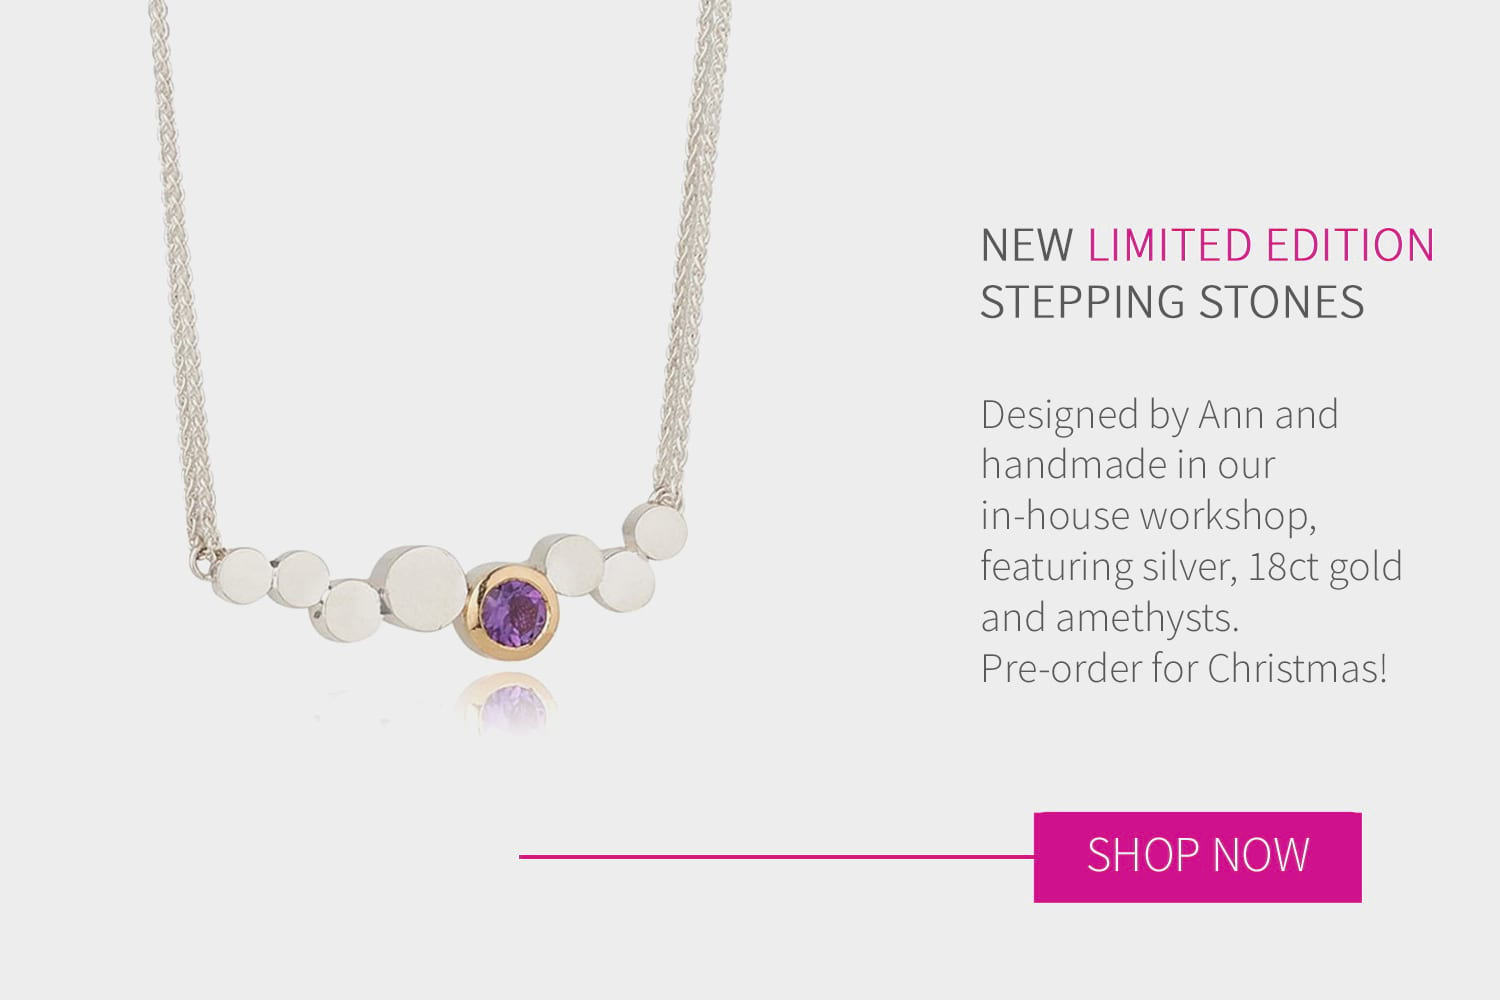 Stepping Stones Limited Edition